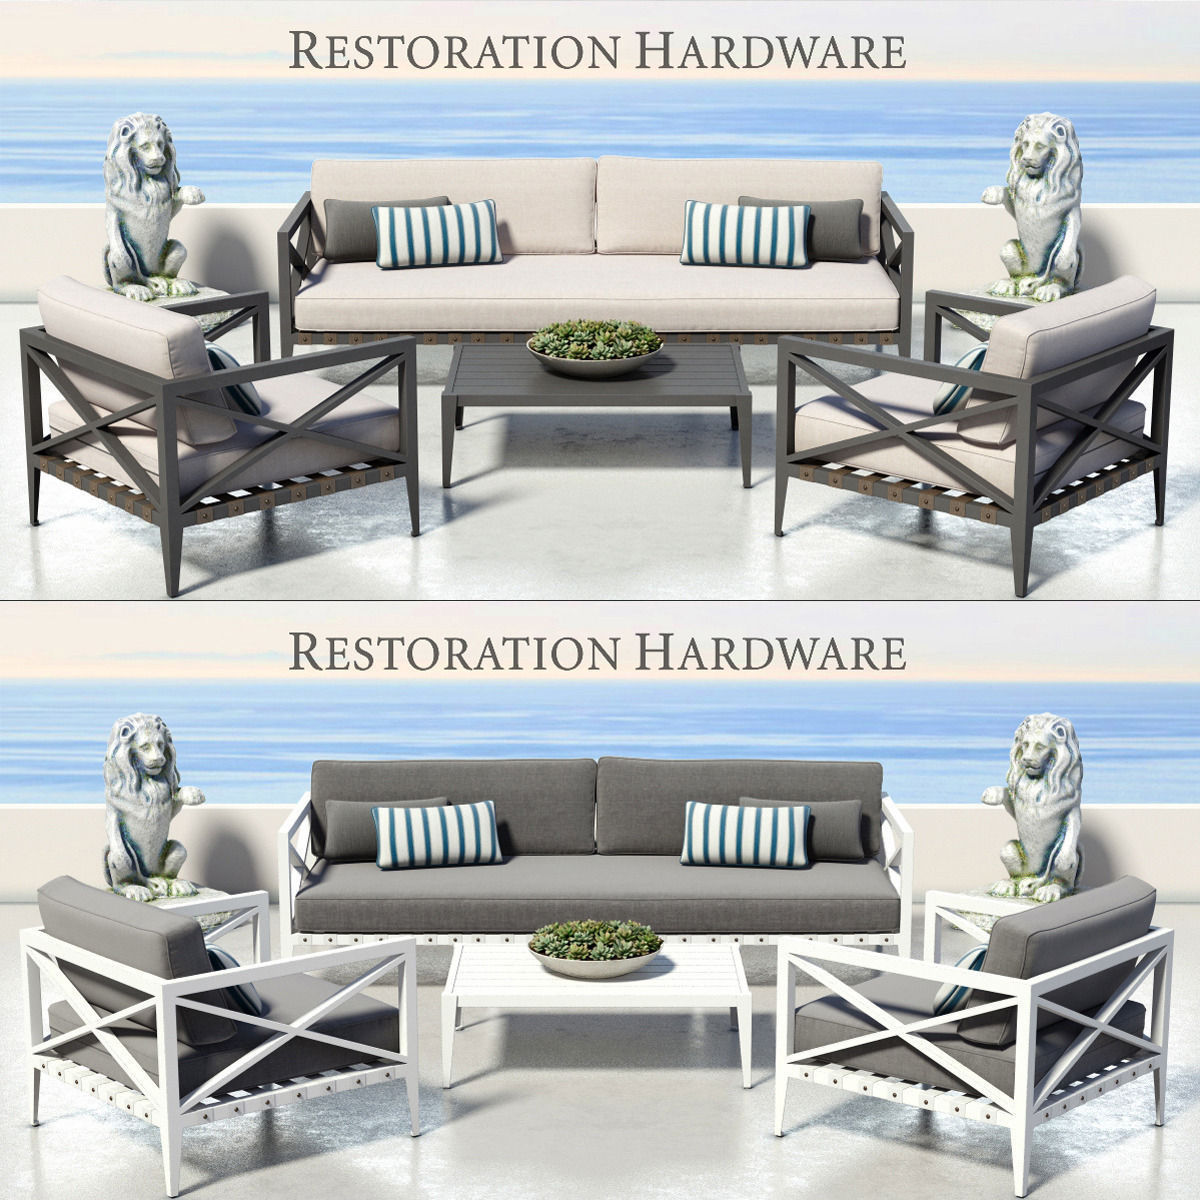 Restoration hardware mustique collection 3d model max for Restoration hardware furniture quality